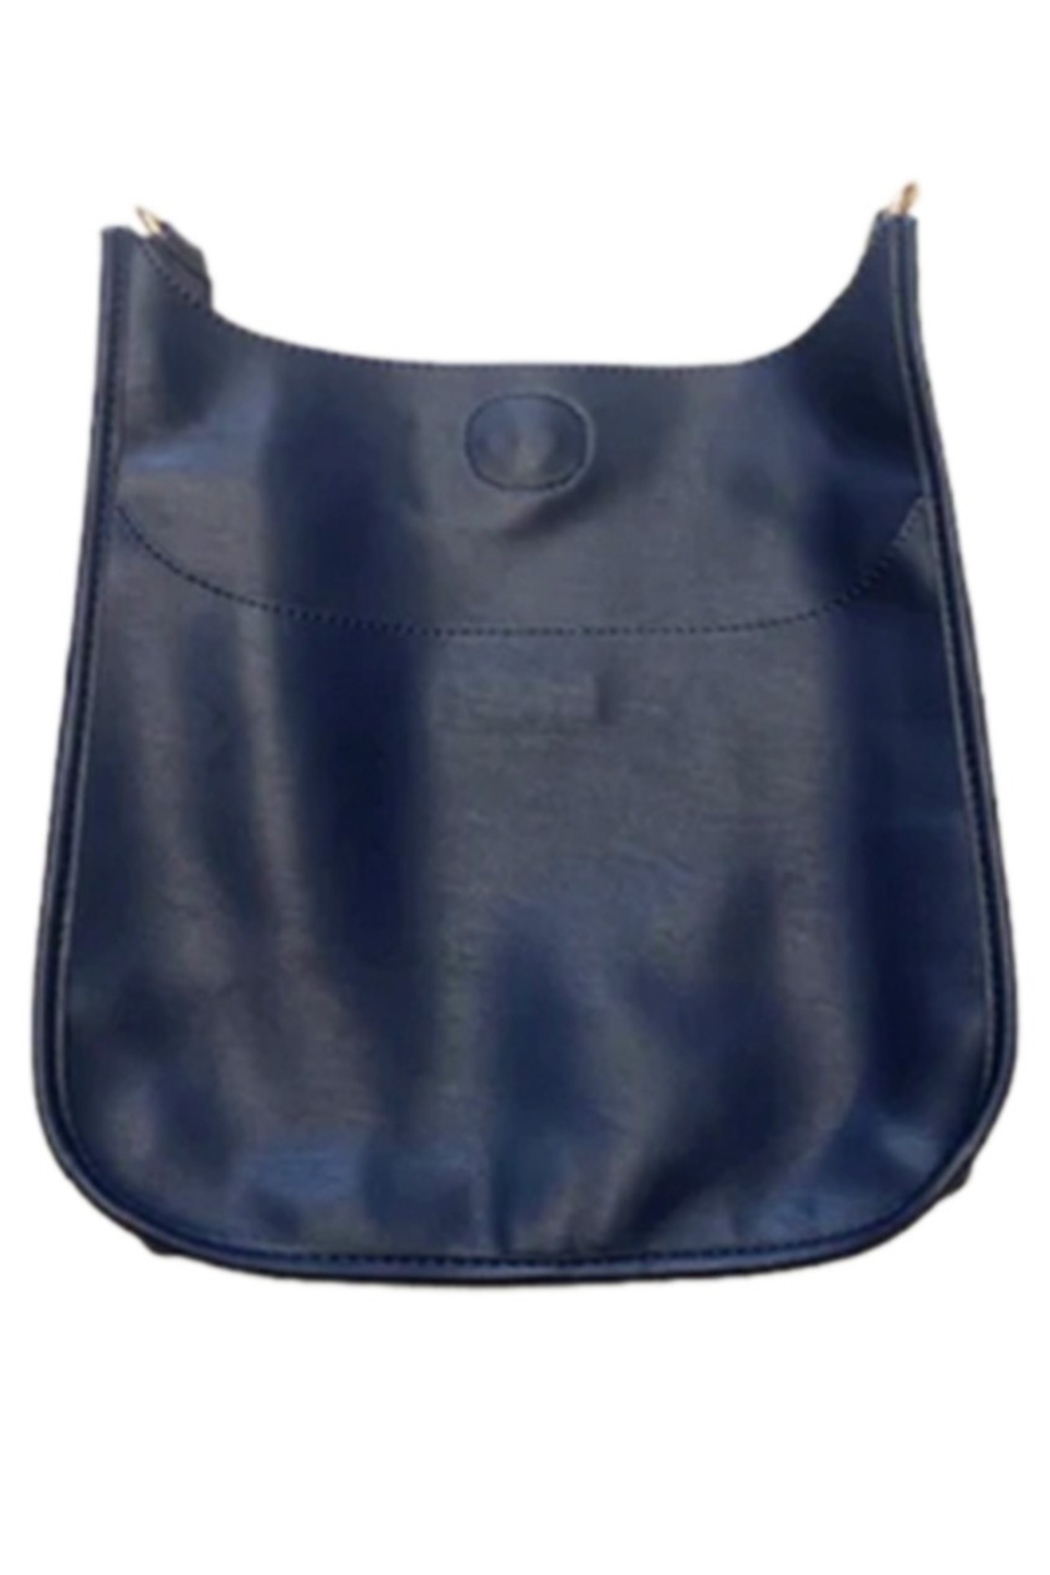 Ahdorned Soft Faux Leather Messenger - Strap not included - Front Cropped Image